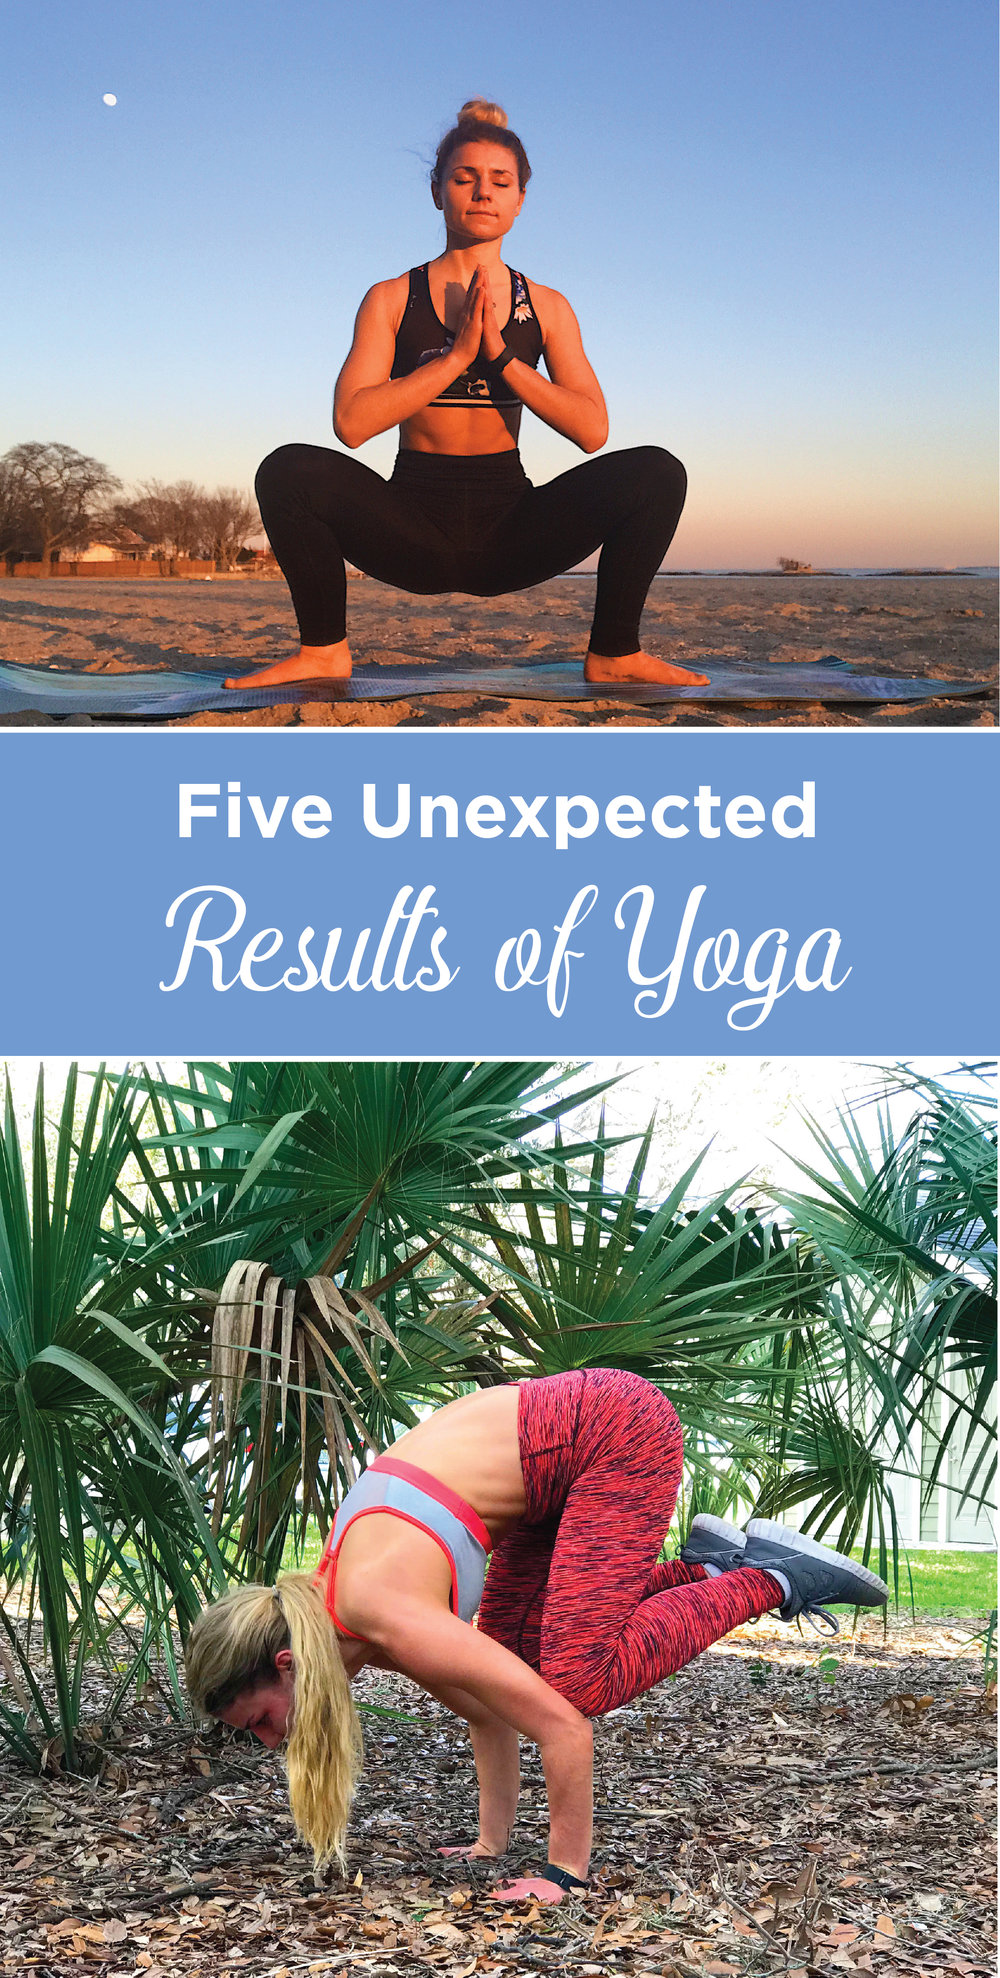 Unexpected Result of Yoga. What I learned from taking yoga classes. More fulfilling than just extra flexibility and core strength.